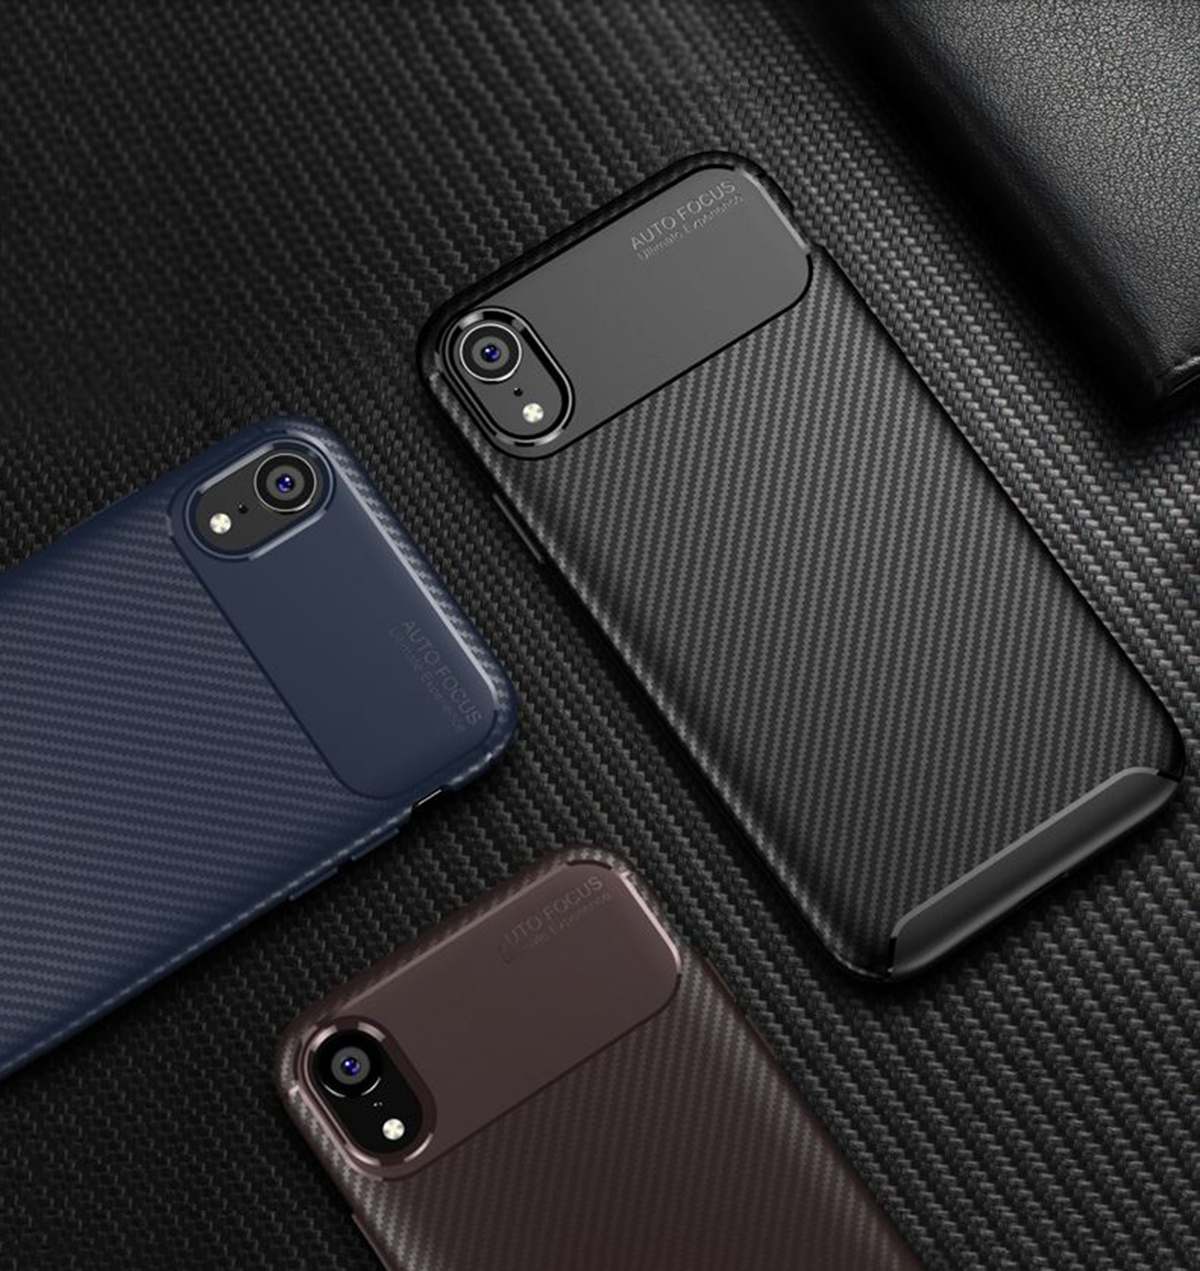 Case-for-iPhone-Carbon-Fibre-Soft-Cover-TPU-Silicone-Slim-11-X-XR-Max-8-7-6-Plus thumbnail 13